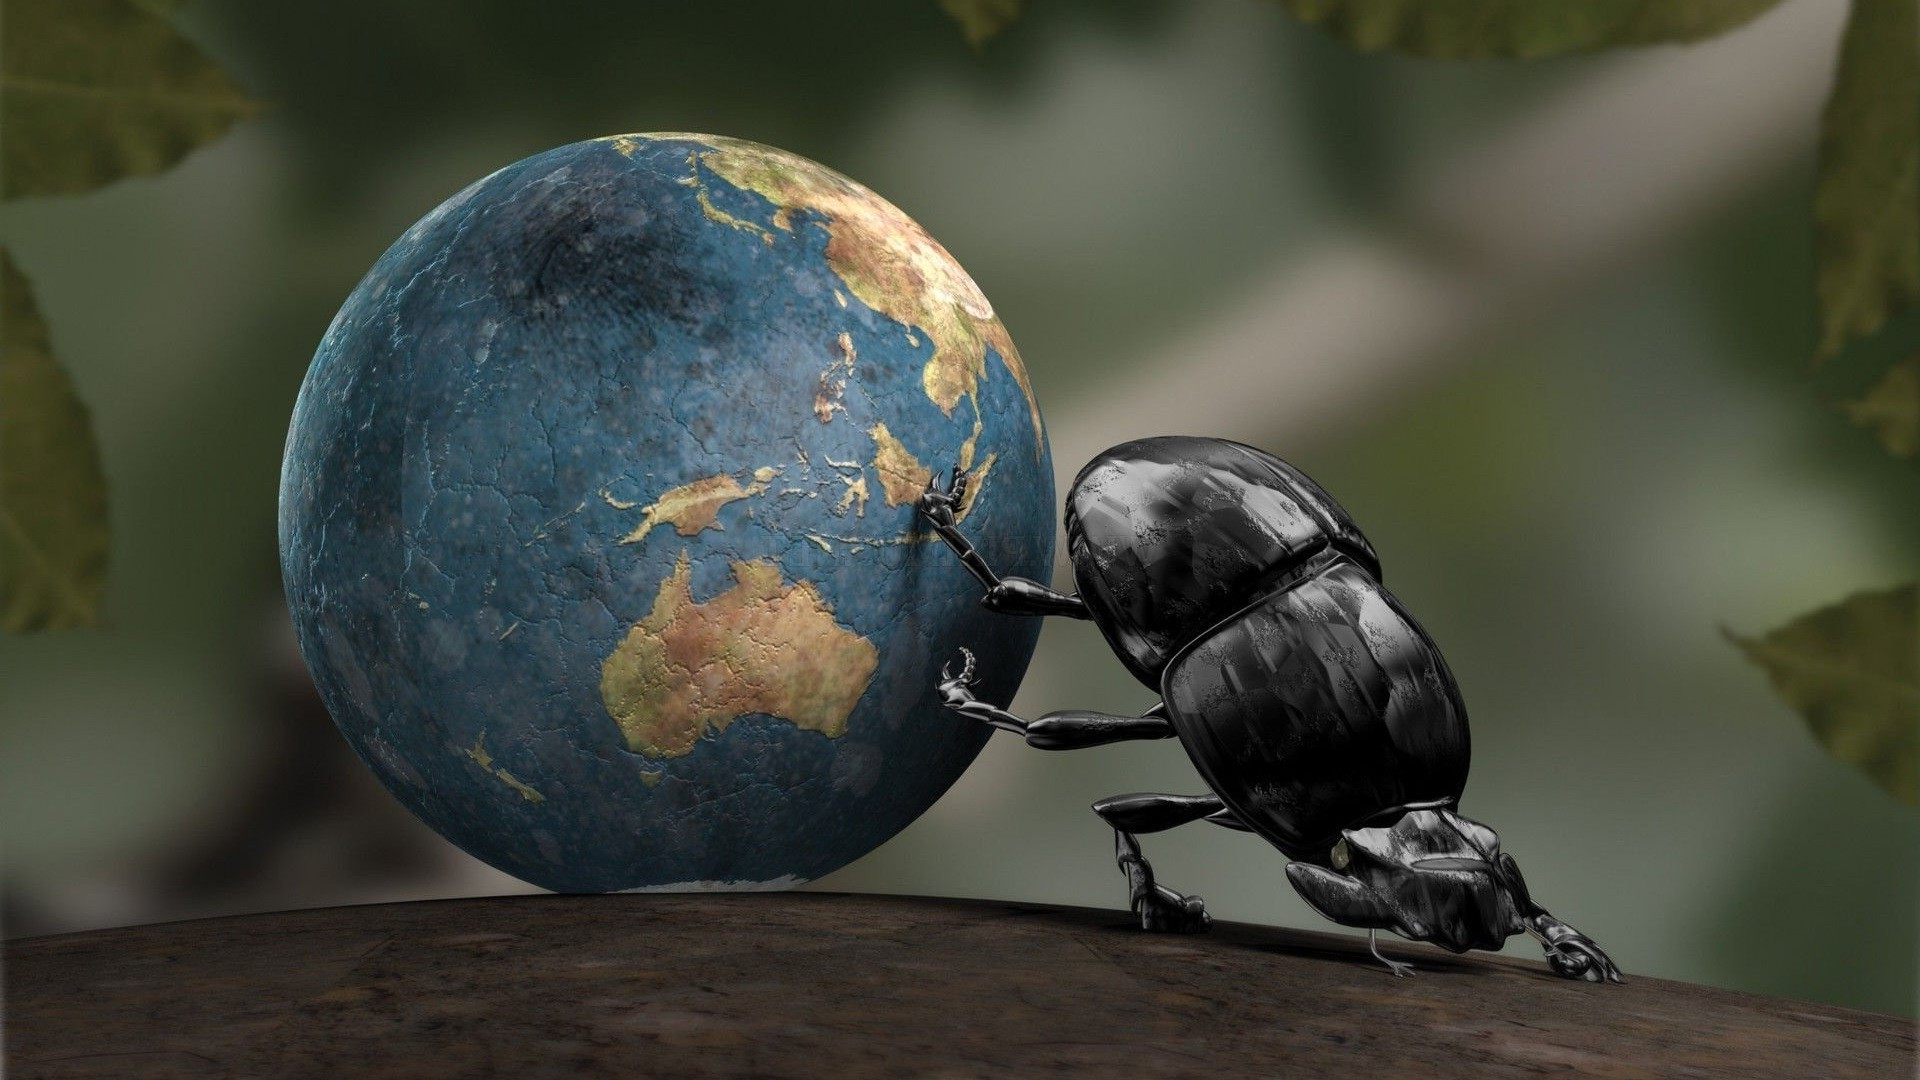 Rolling Girls Wallpaper 1920 Earth Insect Cgi Dung Beetle Crabs Wallpapers Hd